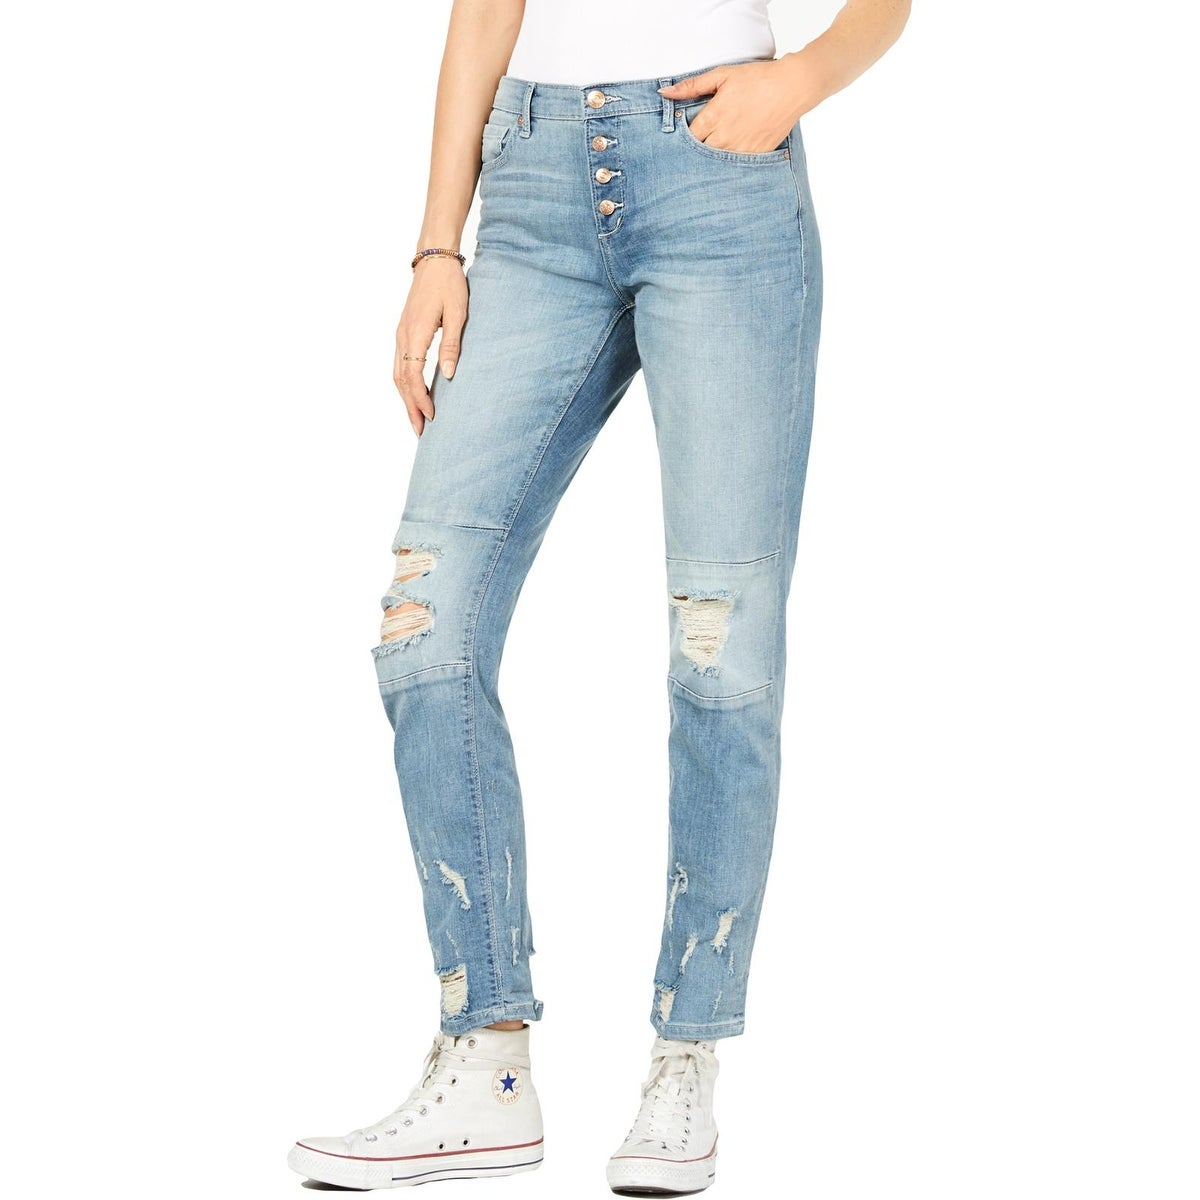 0695719be14e04 Vintage America Pants | Find Great Women's Clothing Deals Shopping ...